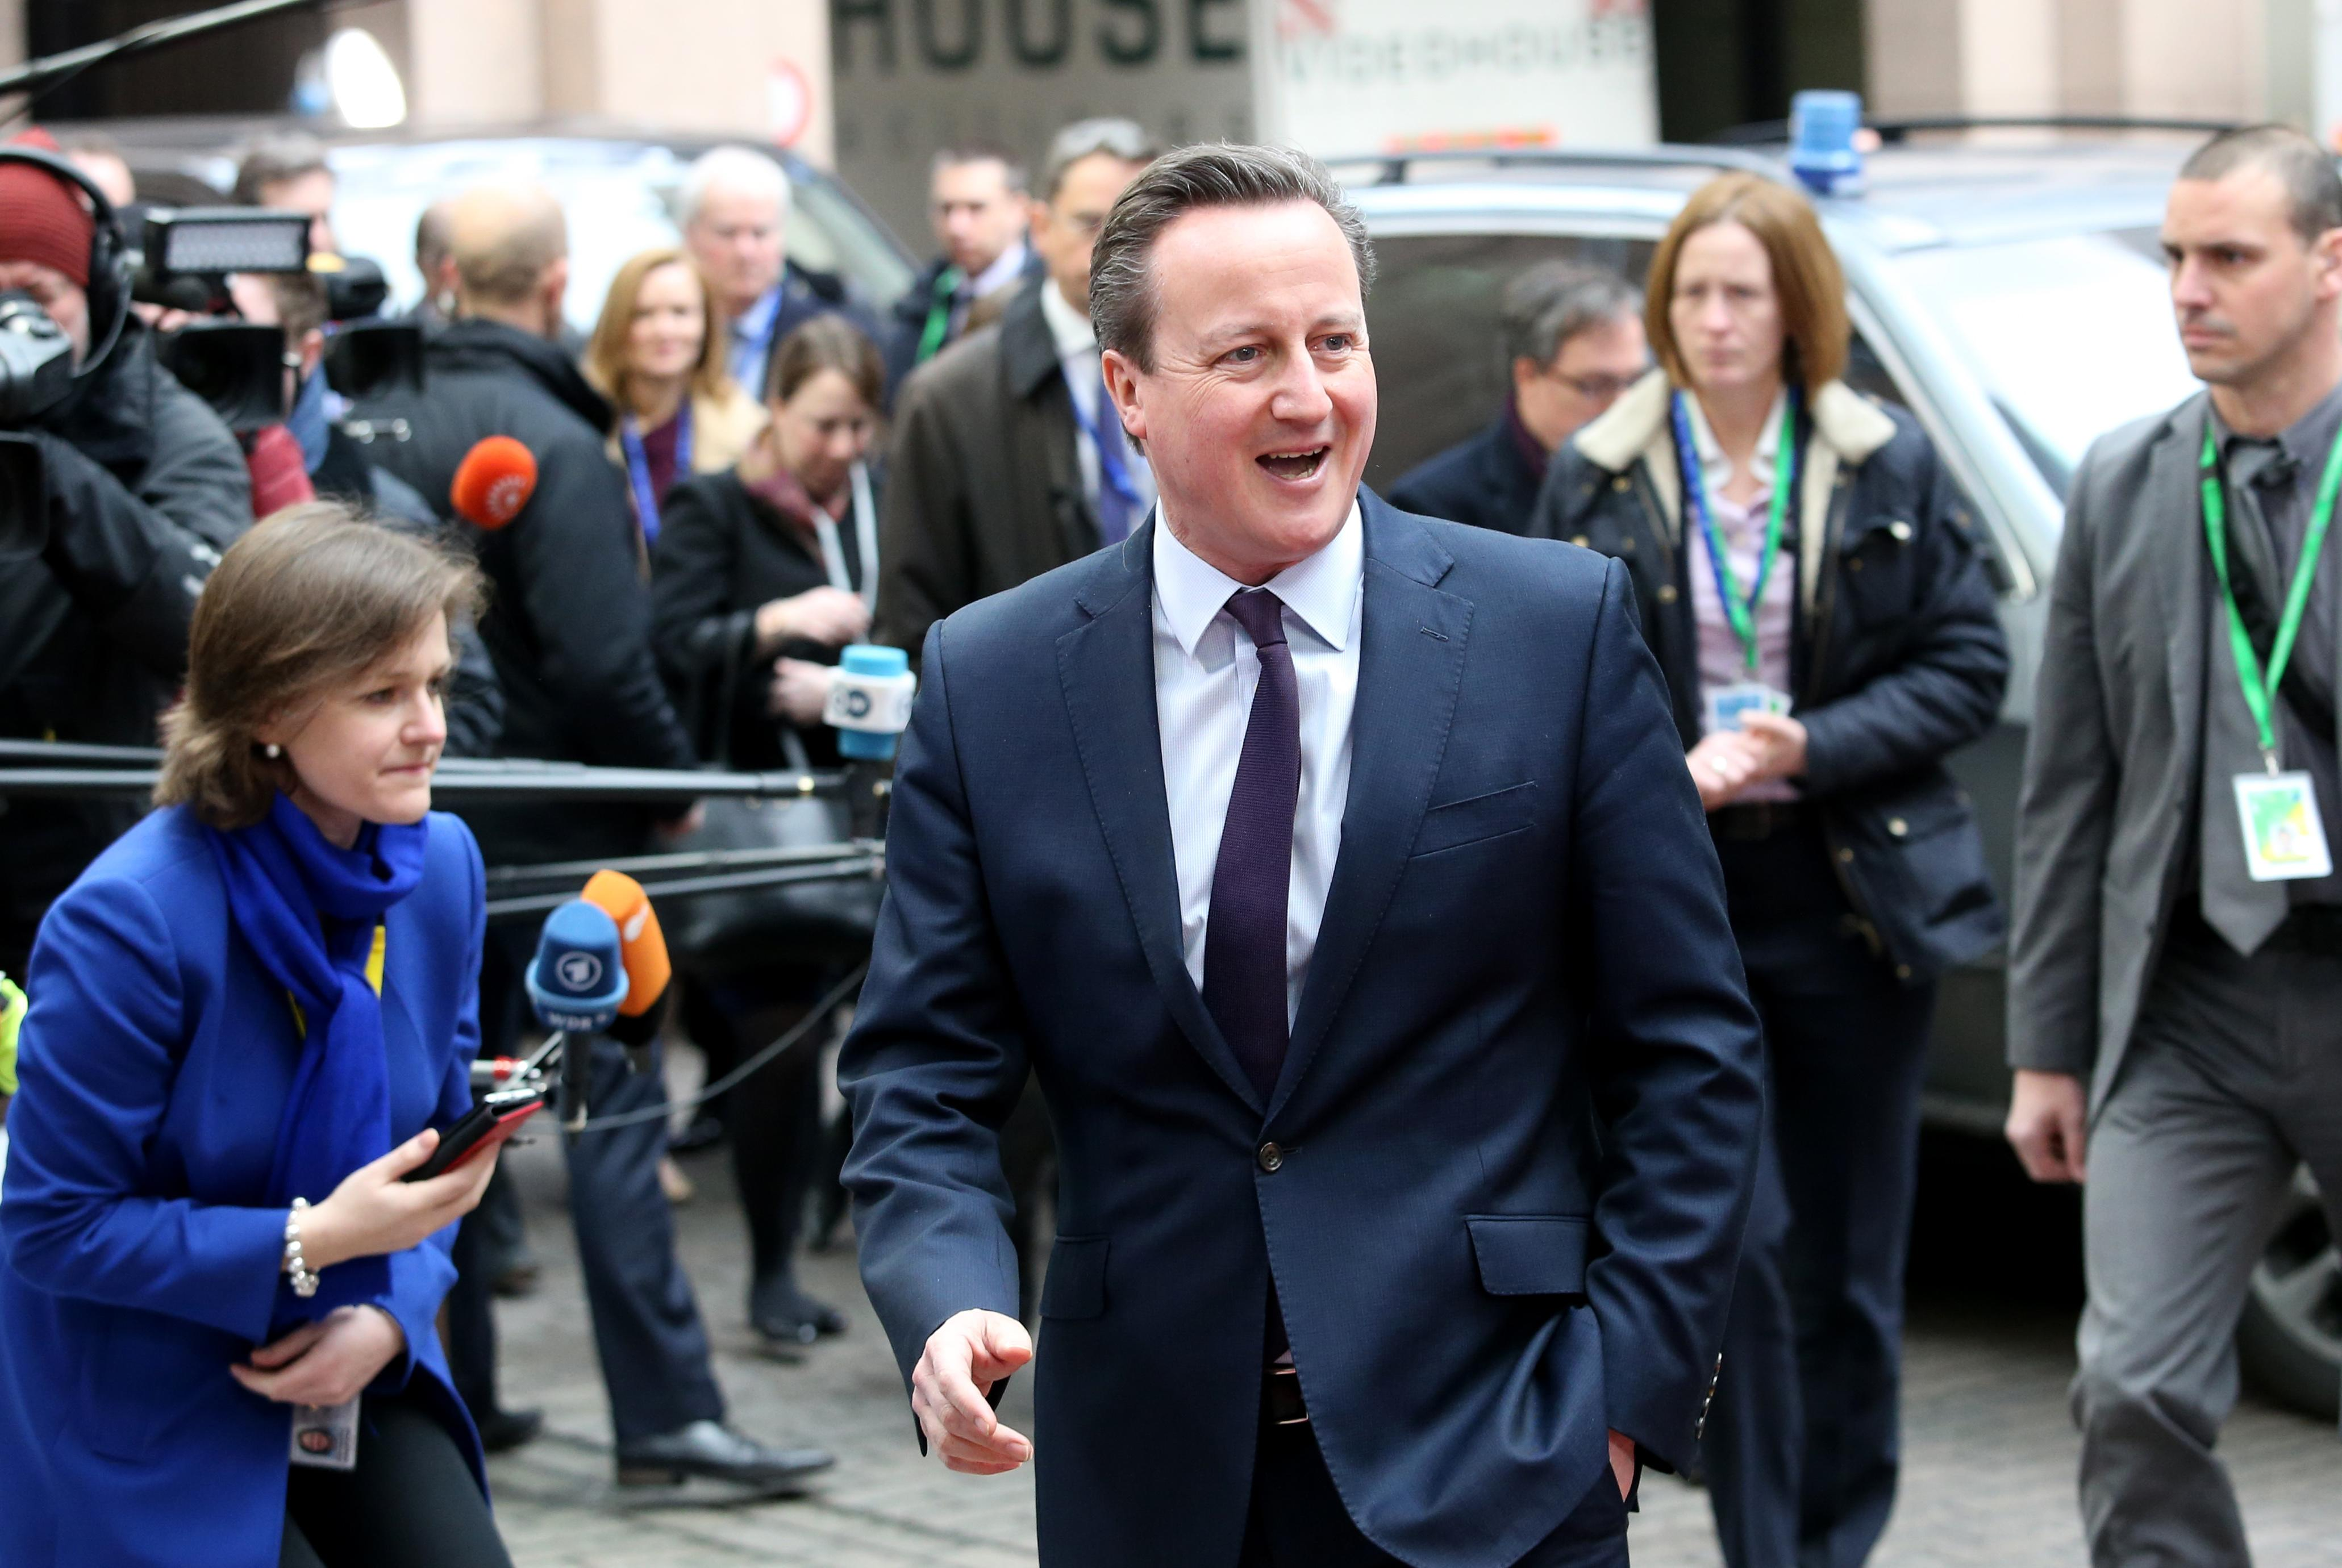 UK's Cameron: EU exit would lead to 'decade of uncertainty'